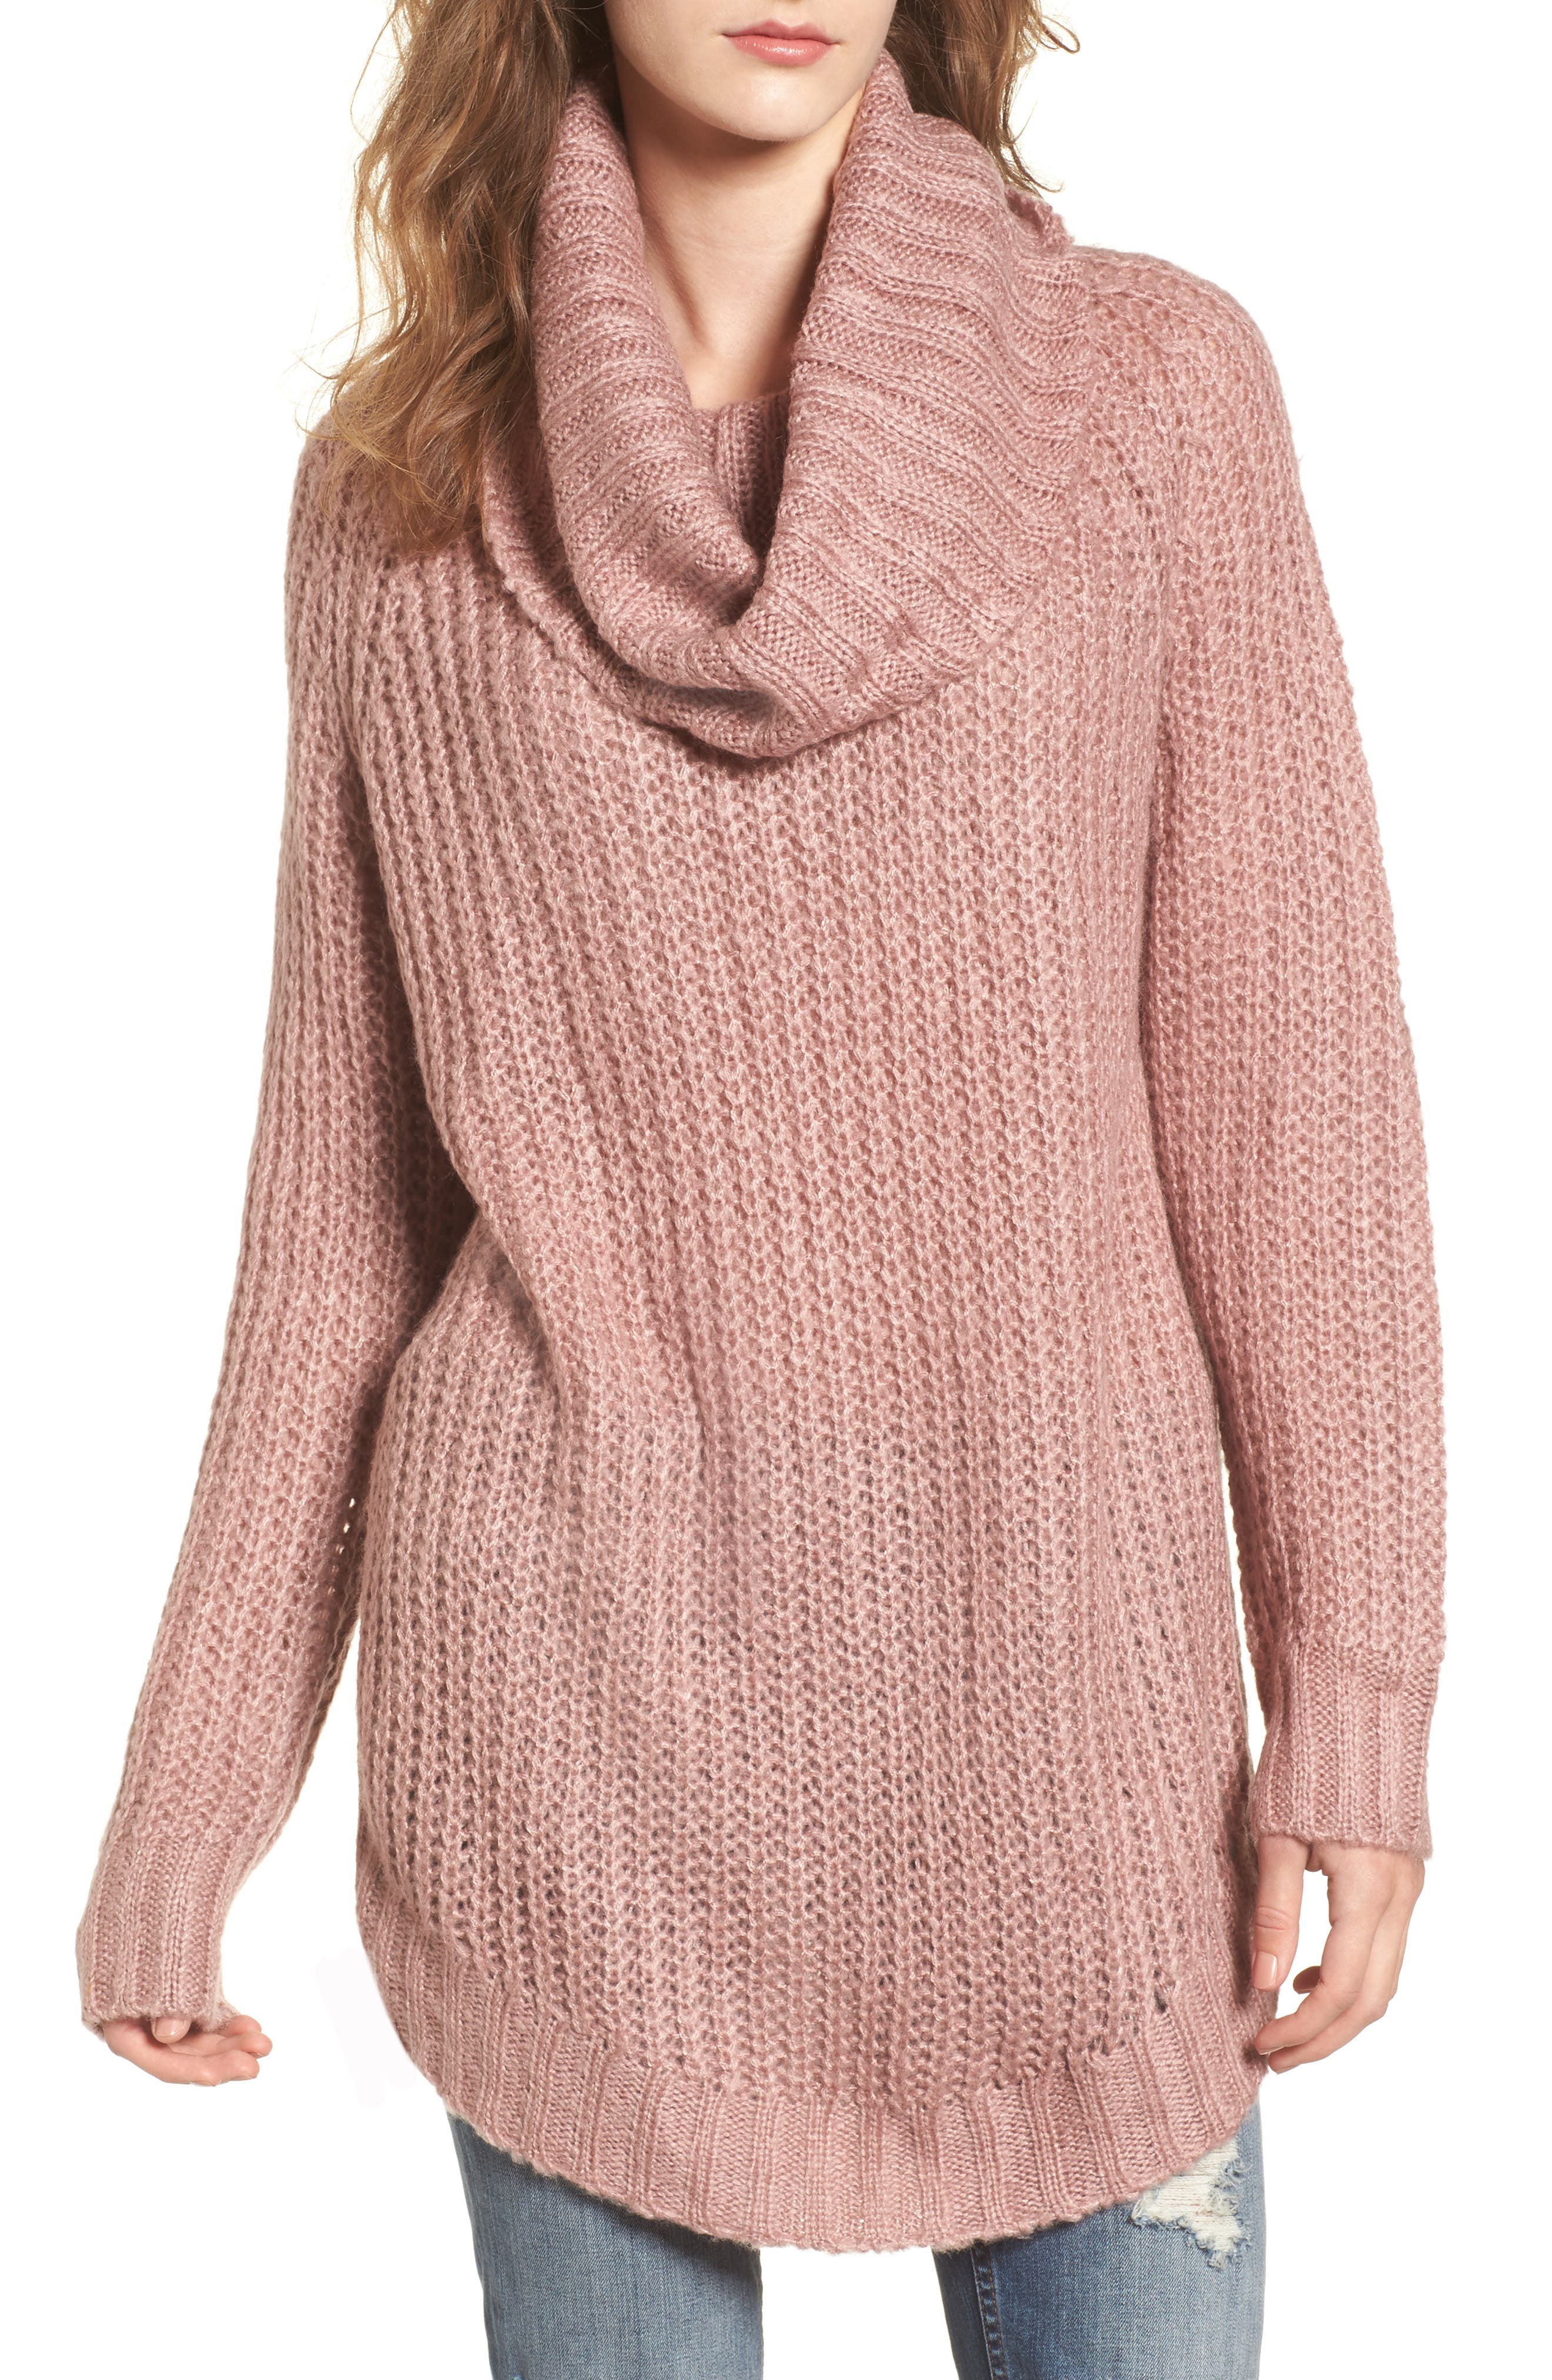 DREAMERS BY DEBUT, Cowl Neck Sweater, Main thumbnail 1, color, 680